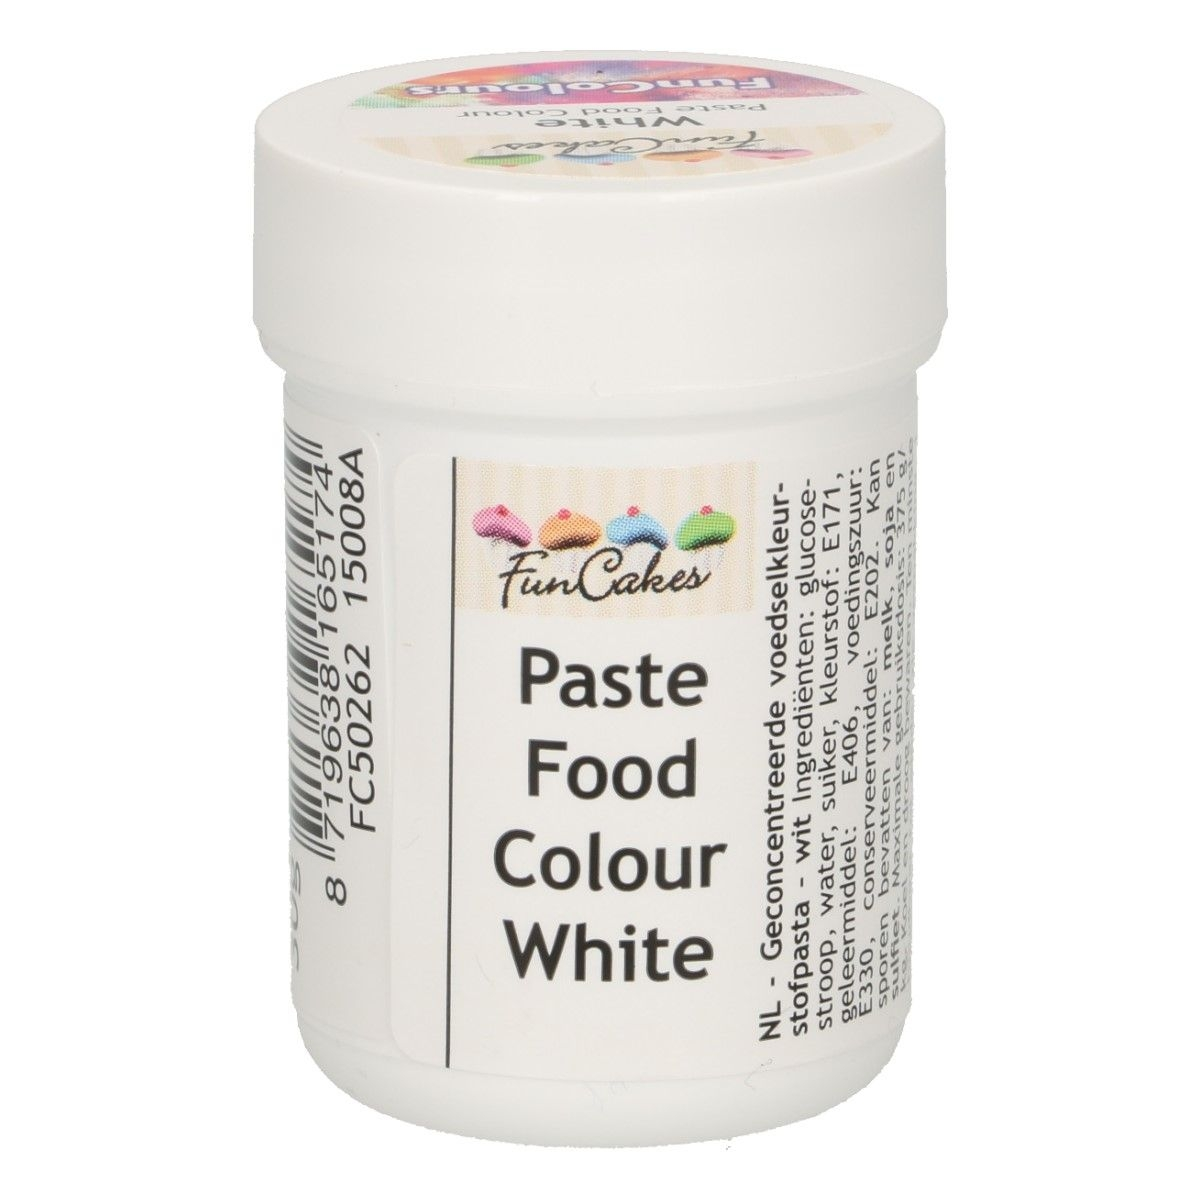 /f/u/funcakes_funcolours_paste_food_colour_-_white.jpg